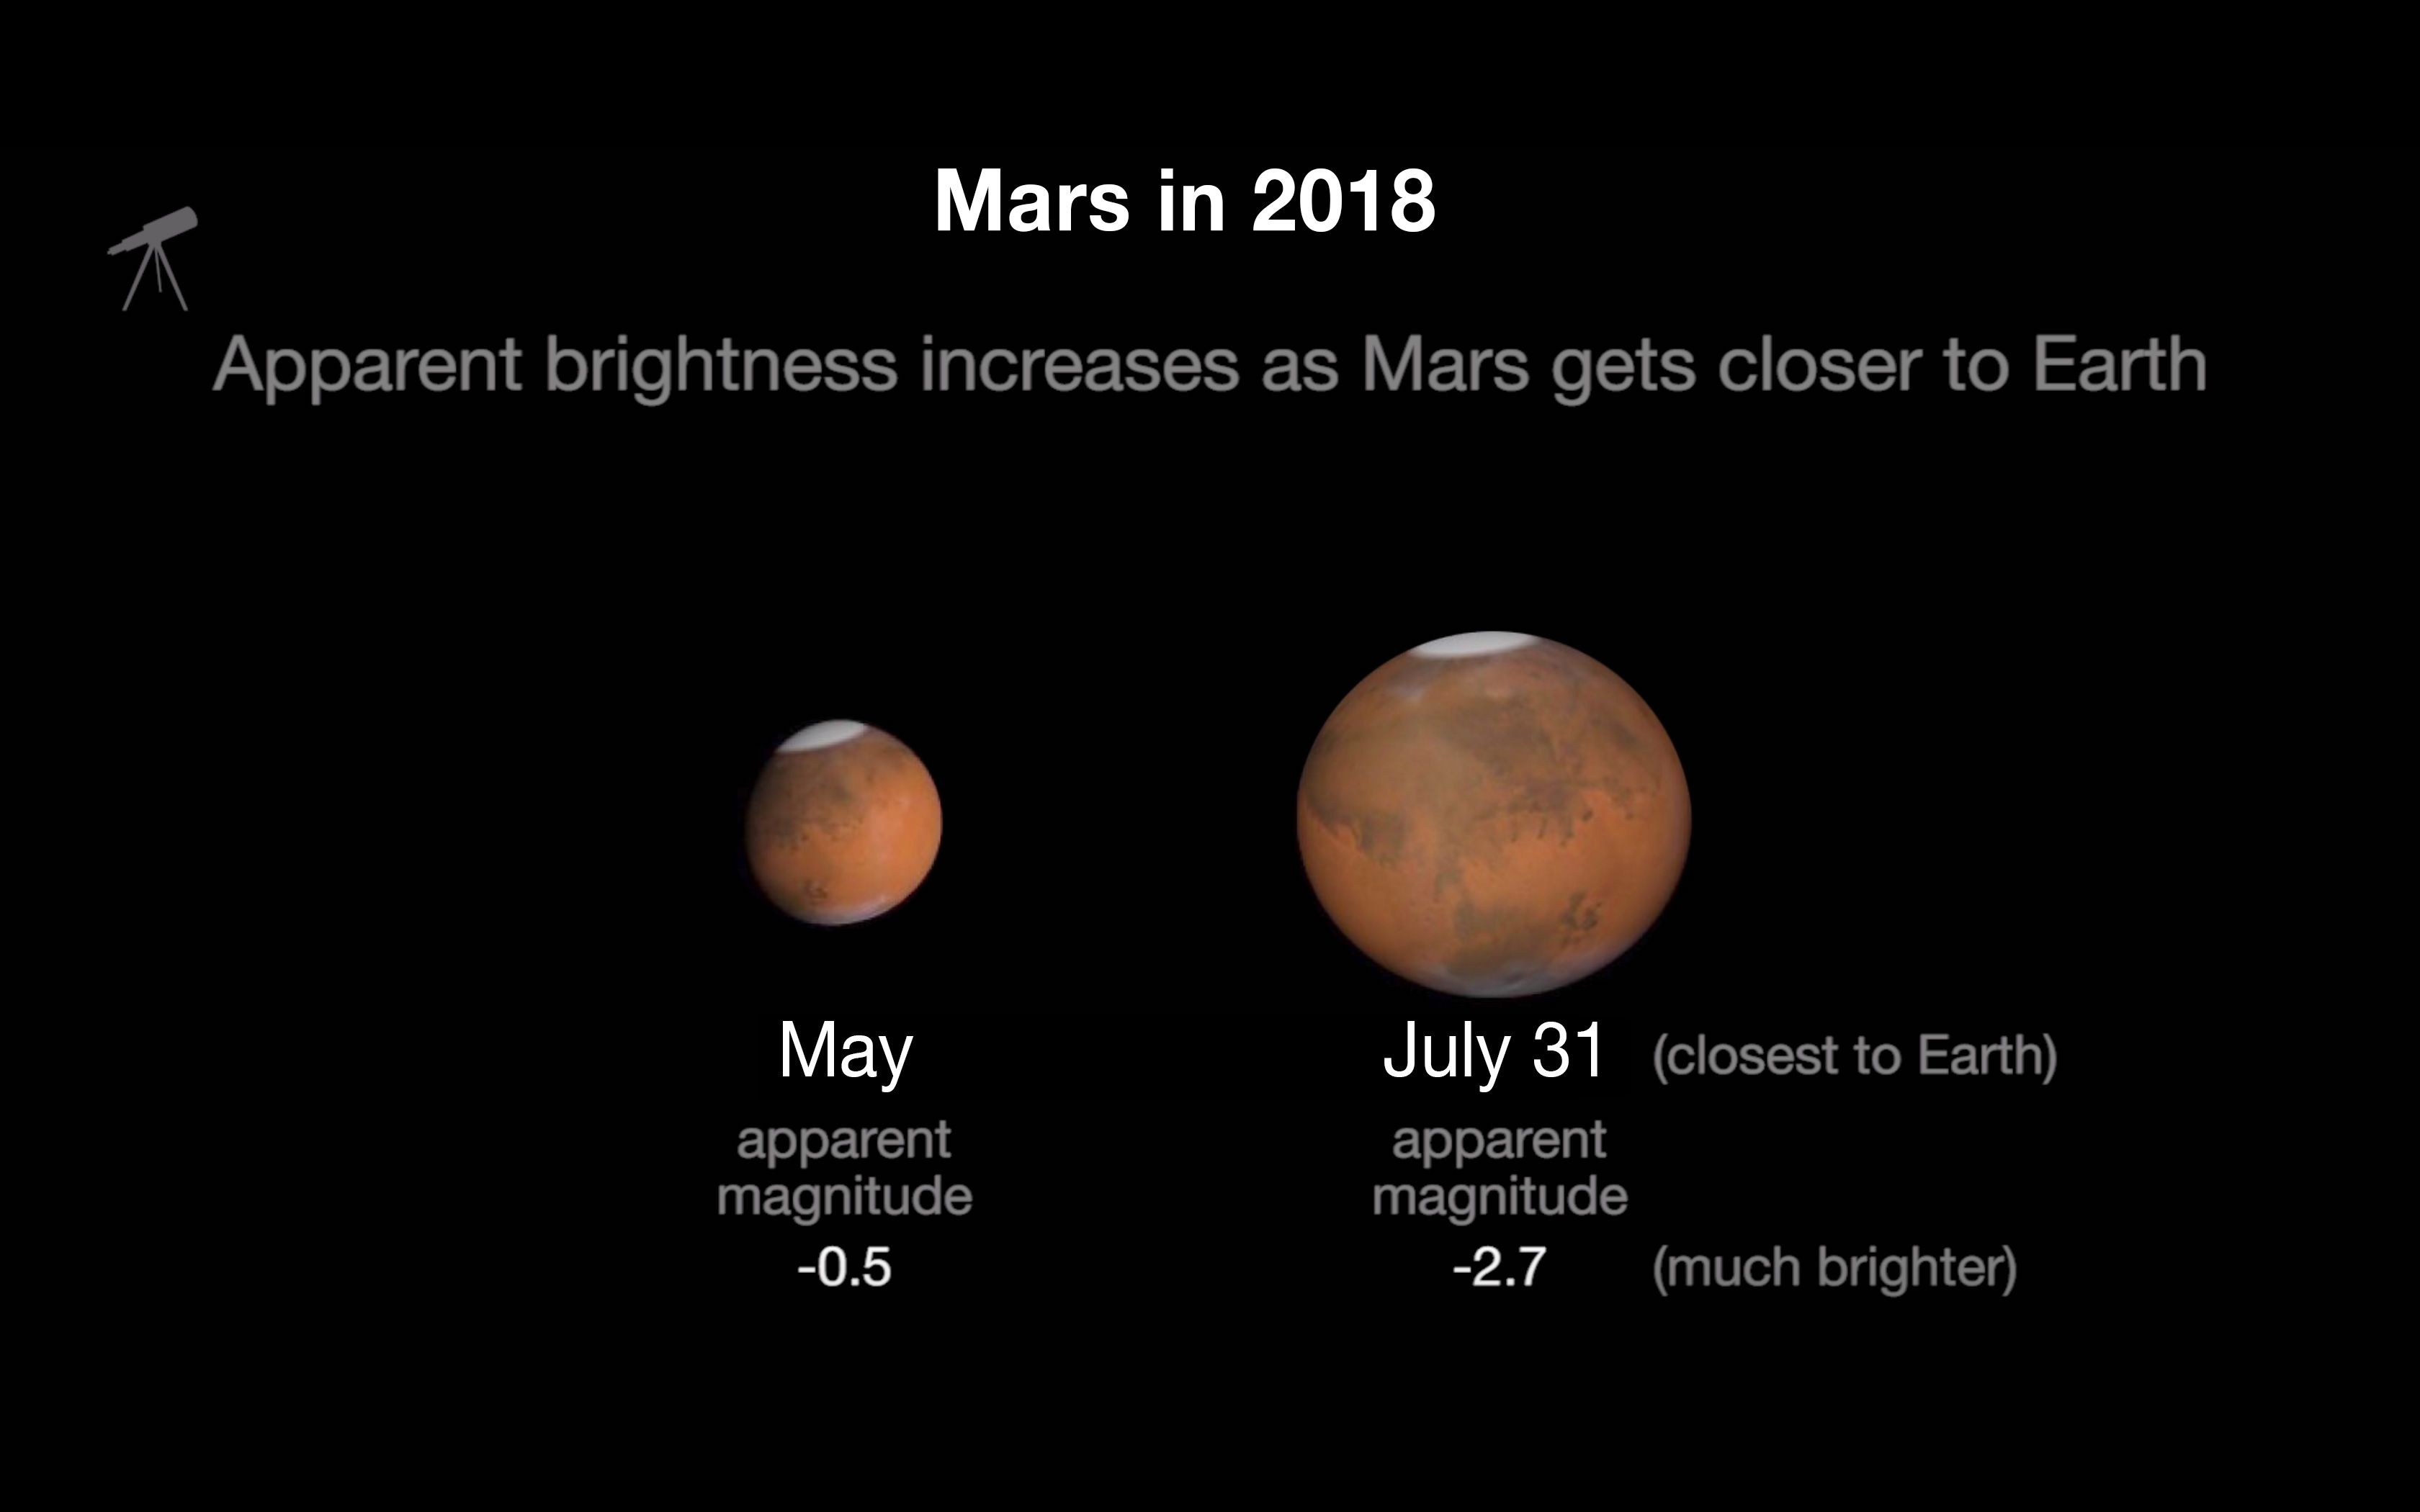 Mars will more than double in size in the night sky between May 2018 and late July 2018.